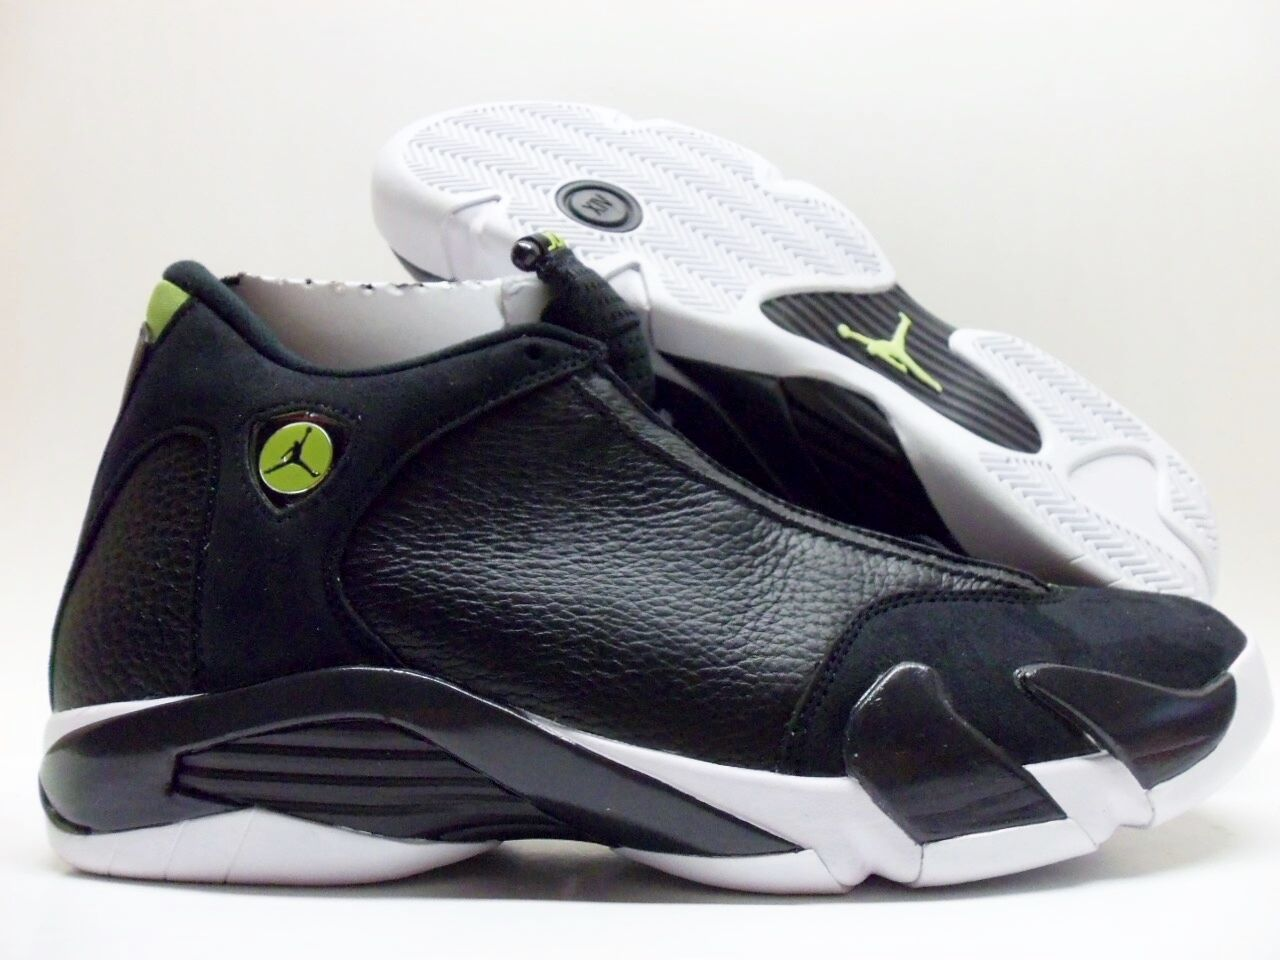 NIKE AIR JORDAN 14 RETRO BLACK/WHITE-VIVID GREEN SIZE MEN'S 13 Price reduction Casual wild